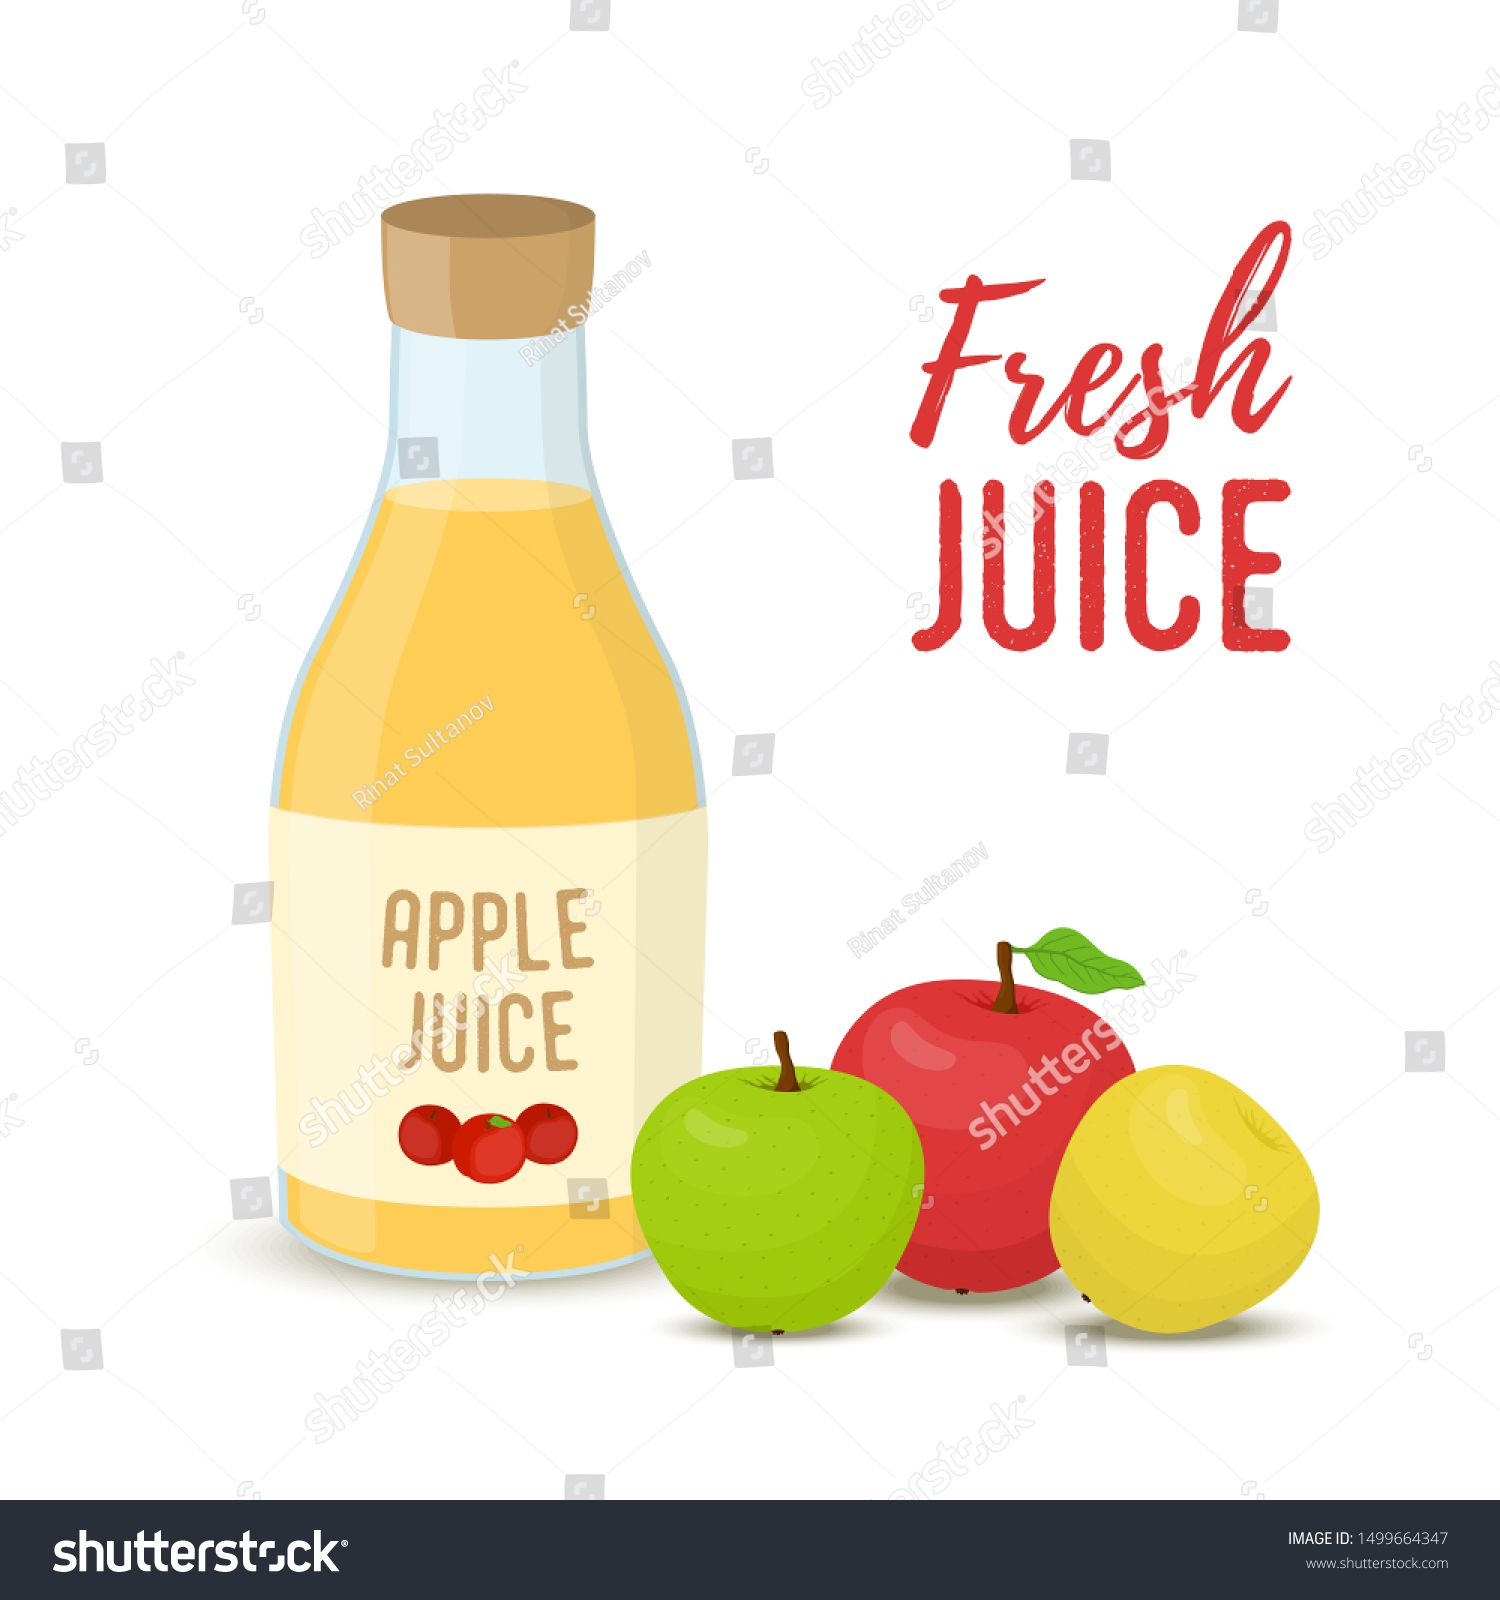 Vector apple juice set - glass bottle with whole fruits. Natural organic drink and food. Cartoon flat style #Sponsored , #sponsored, #glass#bottle#fruits#set